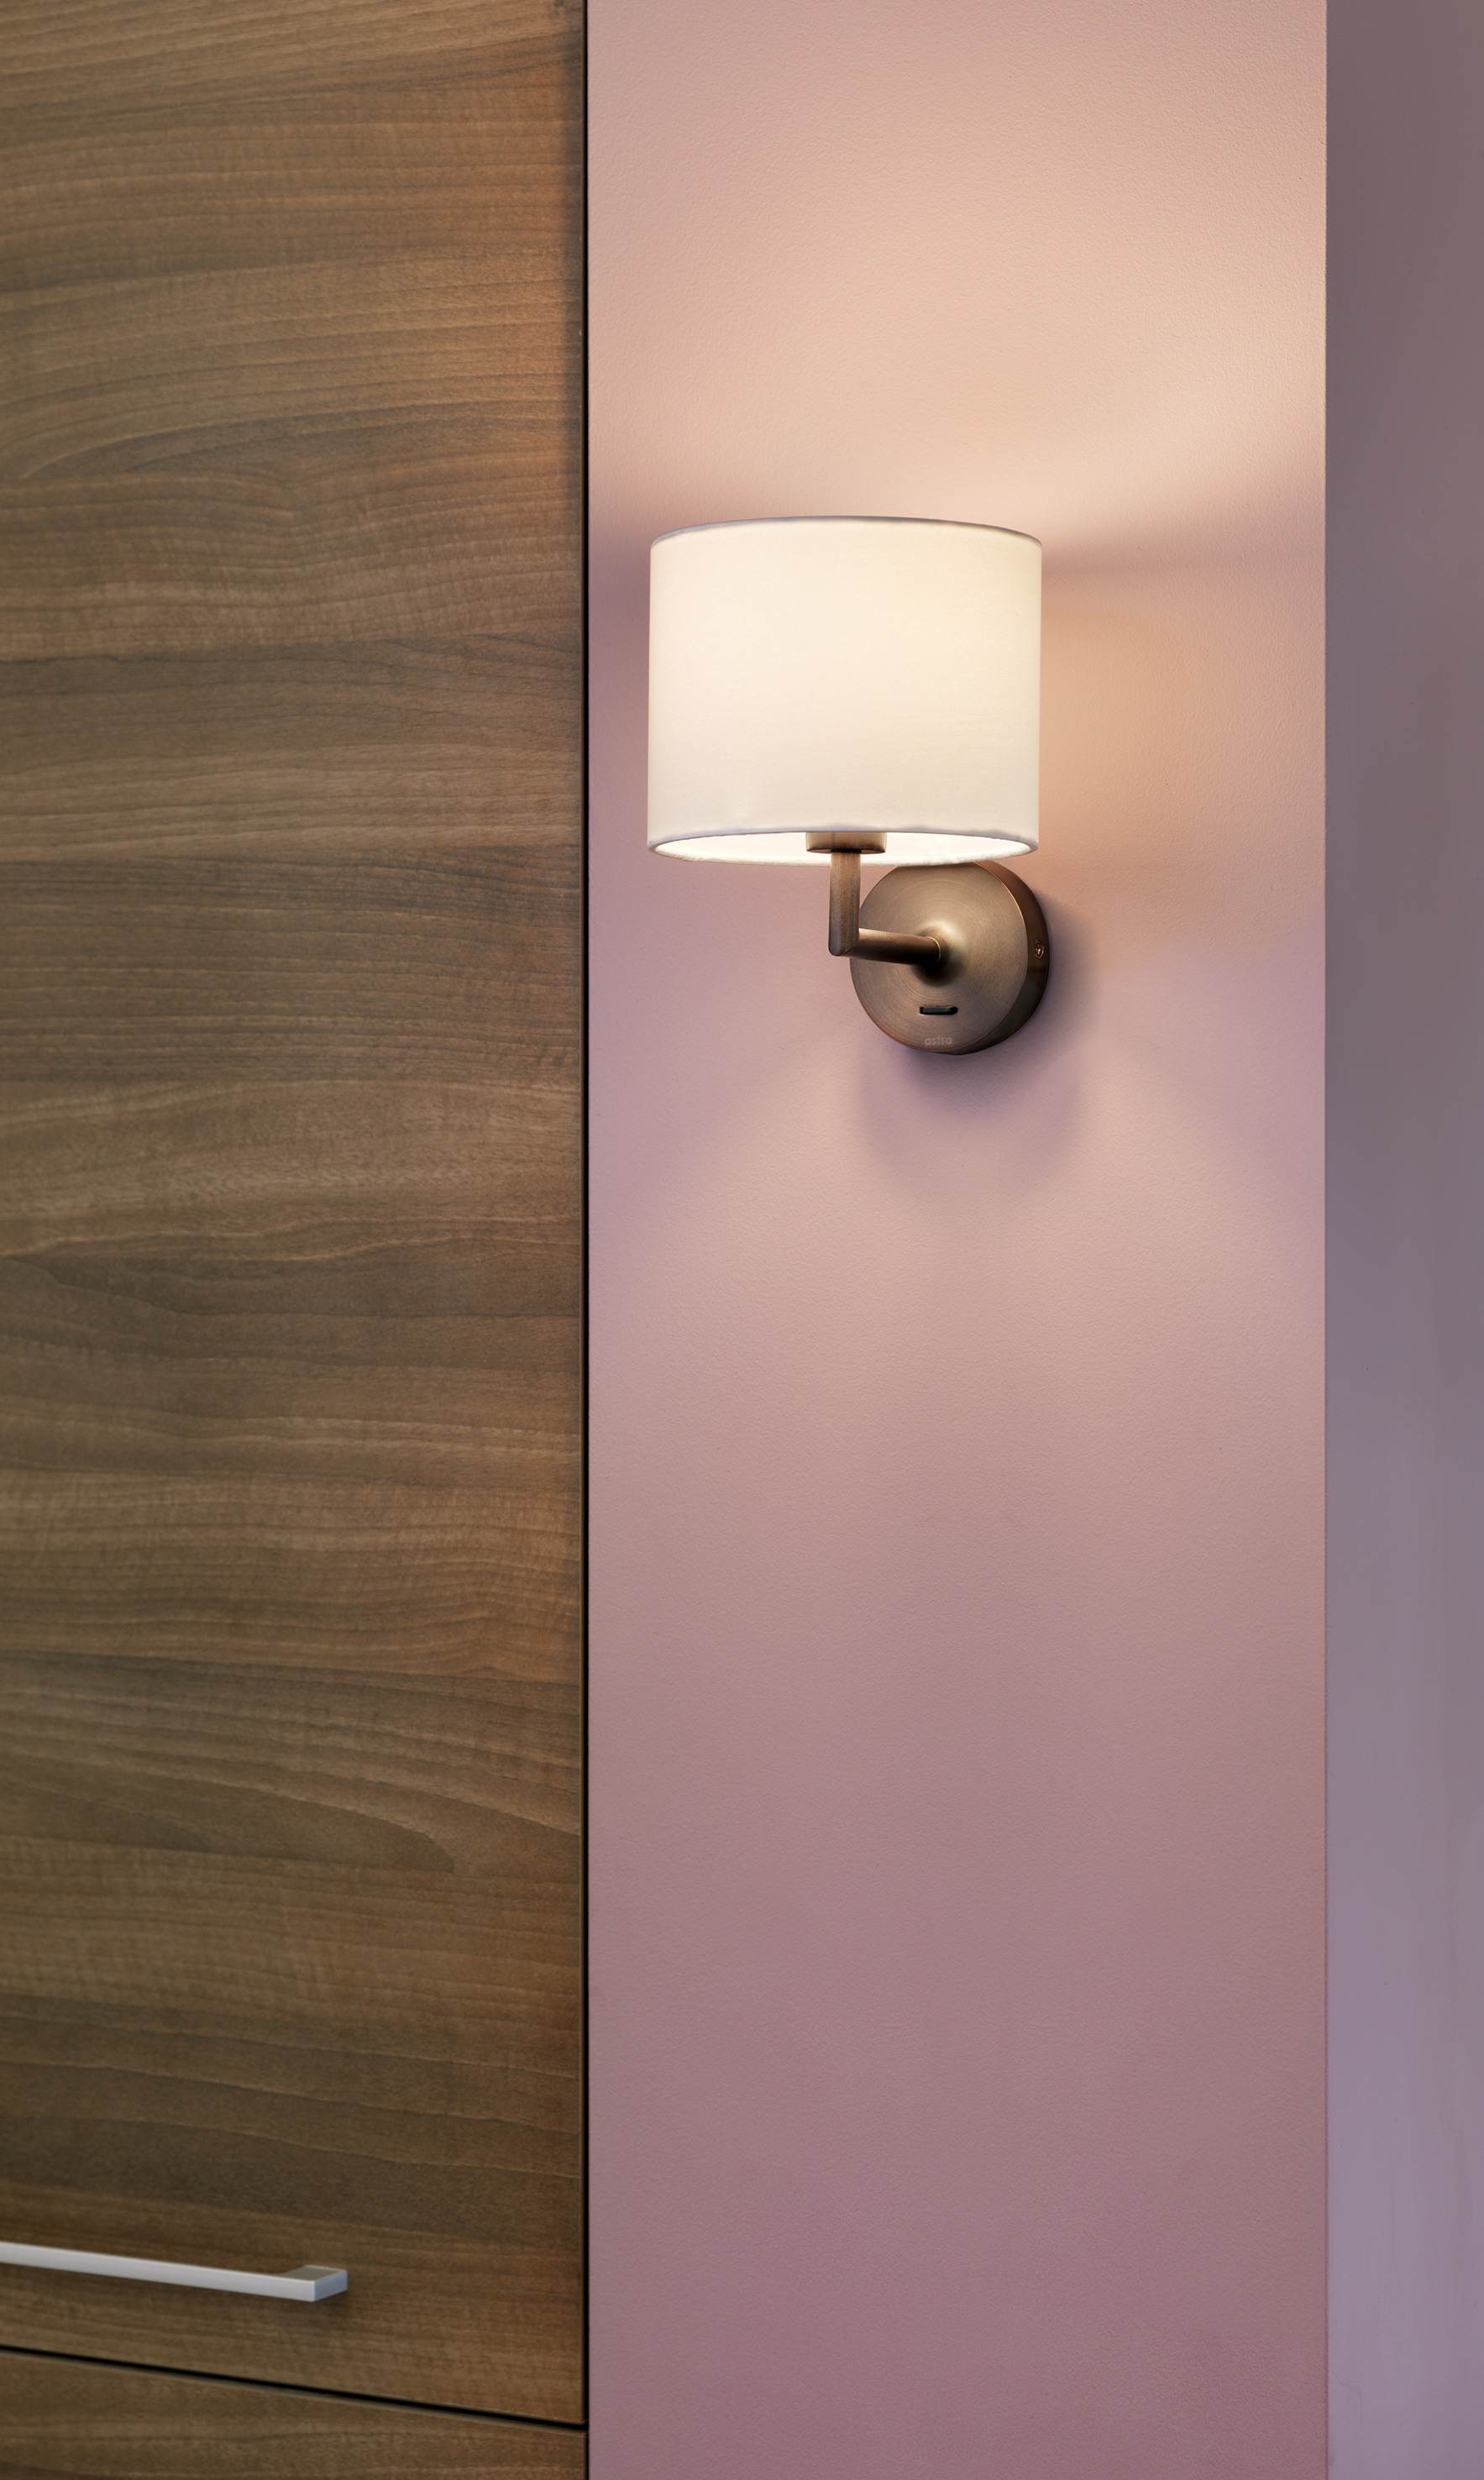 Wall Lights With Matching Ceiling Lights : wall lights with matching ceiling light My Web Value